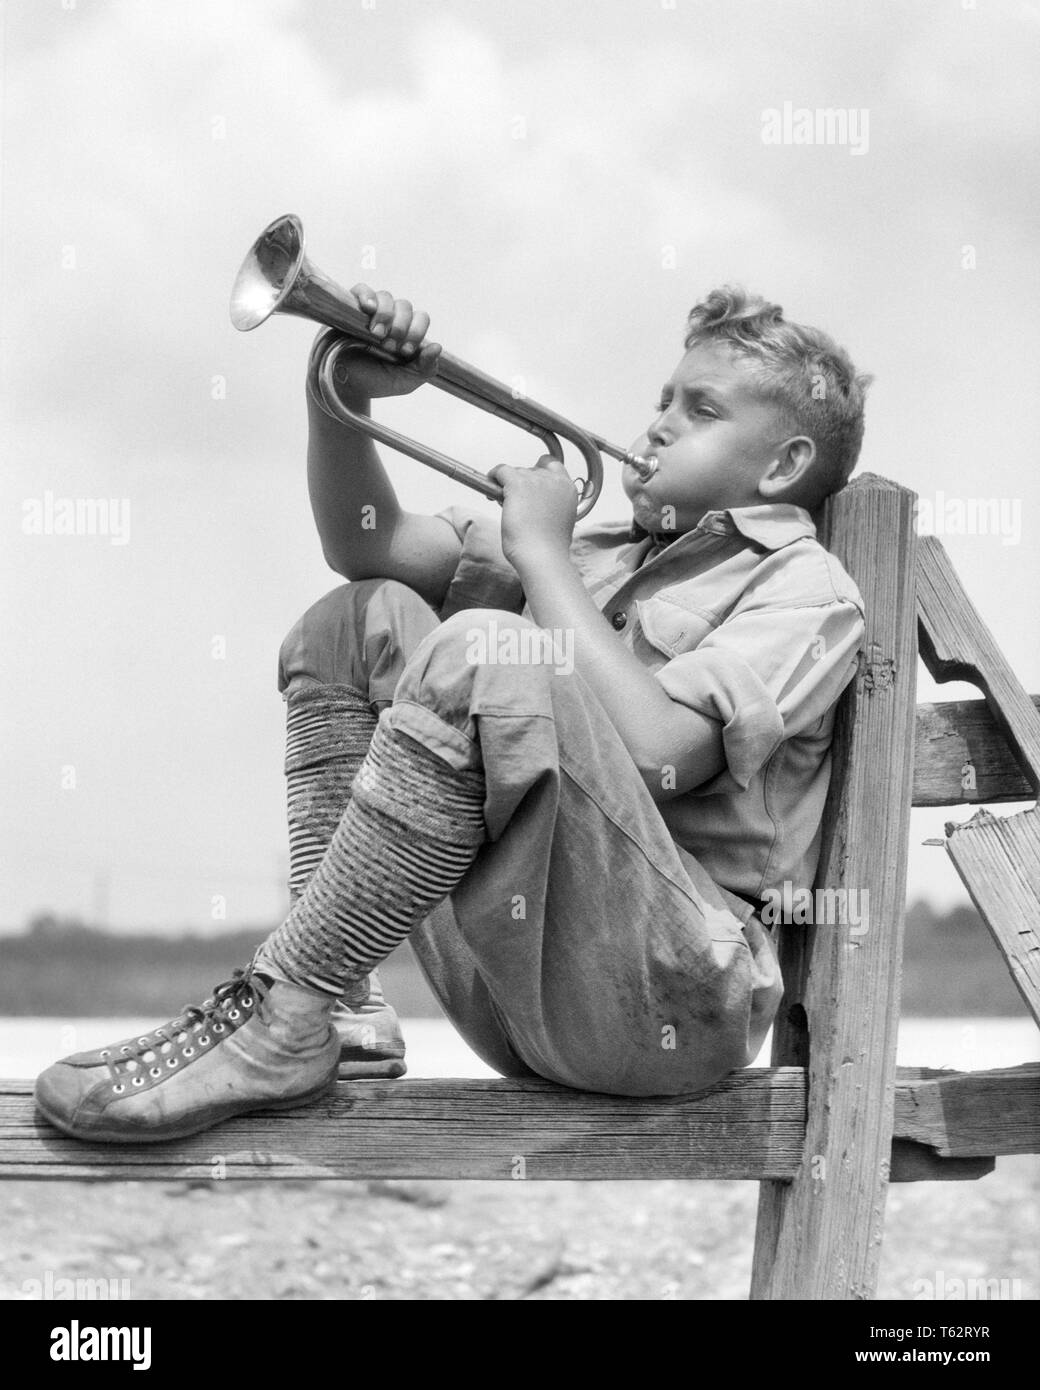 1930s PRETEEN BOY IN KNEE PANTS SOCKS AND SNEAKERS SITTING ON RAIL FENCE PLAYING BLOWING BUGLE - b7941 HAR001 HARS BRASS EXPRESSIONS B&W SUCCESS RAIL AND CHEEKS EXCITEMENT LOUD BULGING IN ON PRETEEN CONCEPTUAL BUGLE KNEE PANTS JUVENILES PRE-TEEN PRE-TEEN BOY BLACK AND WHITE CAUCASIAN ETHNICITY CONCENTRATING HAR001 OLD FASHIONED - Stock Image